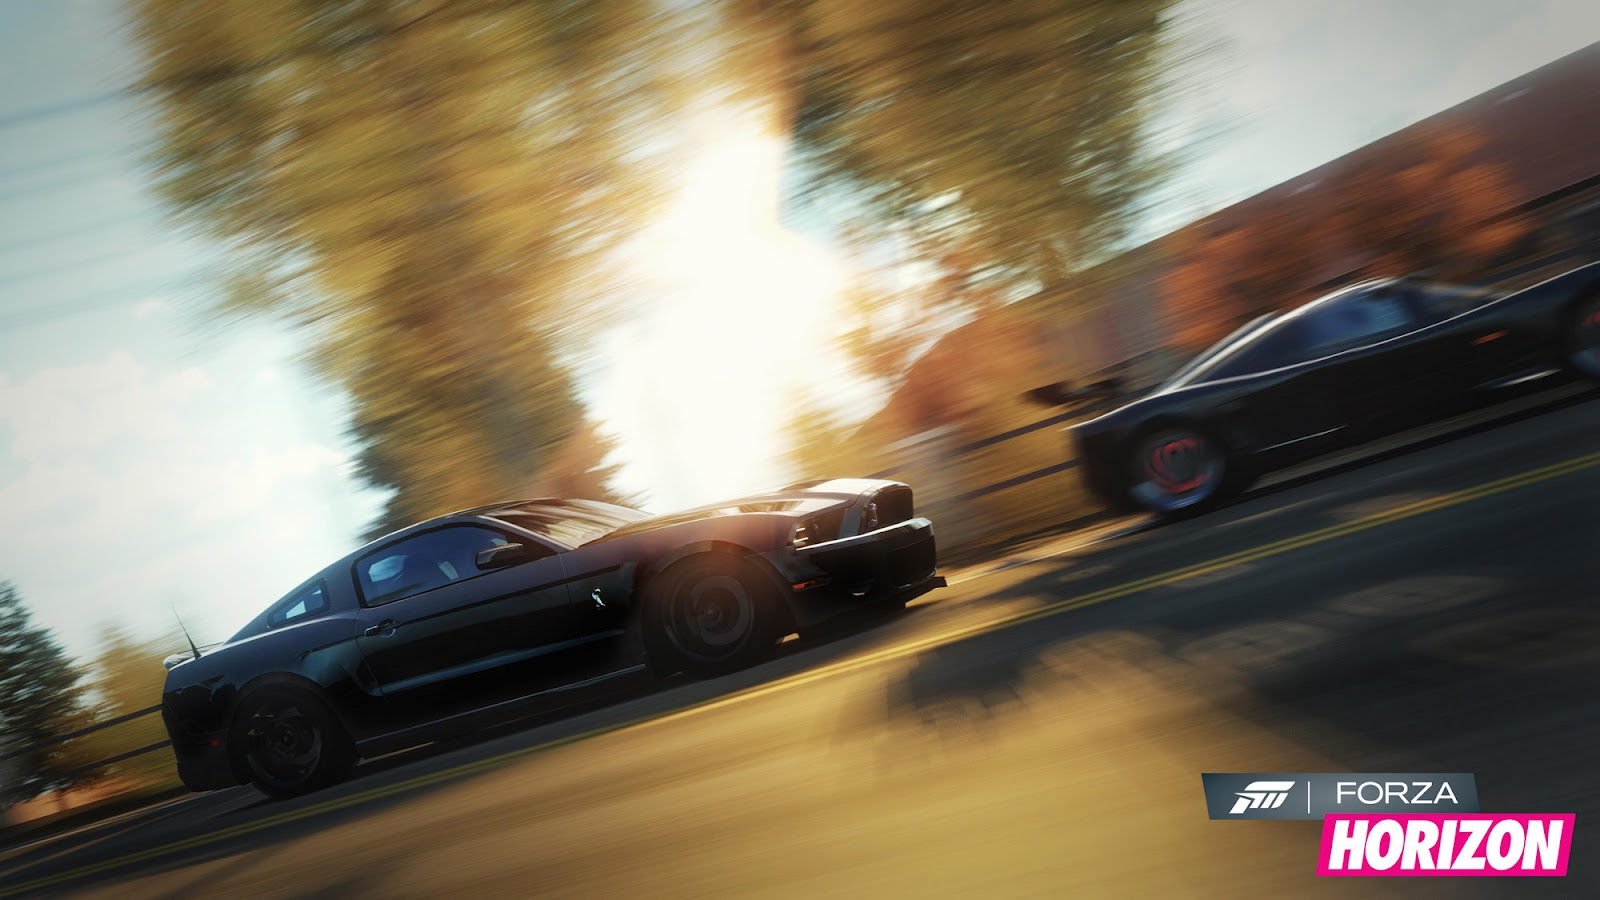 Forza Horizon HD & Widescreen Wallpaper 0.520340521833669